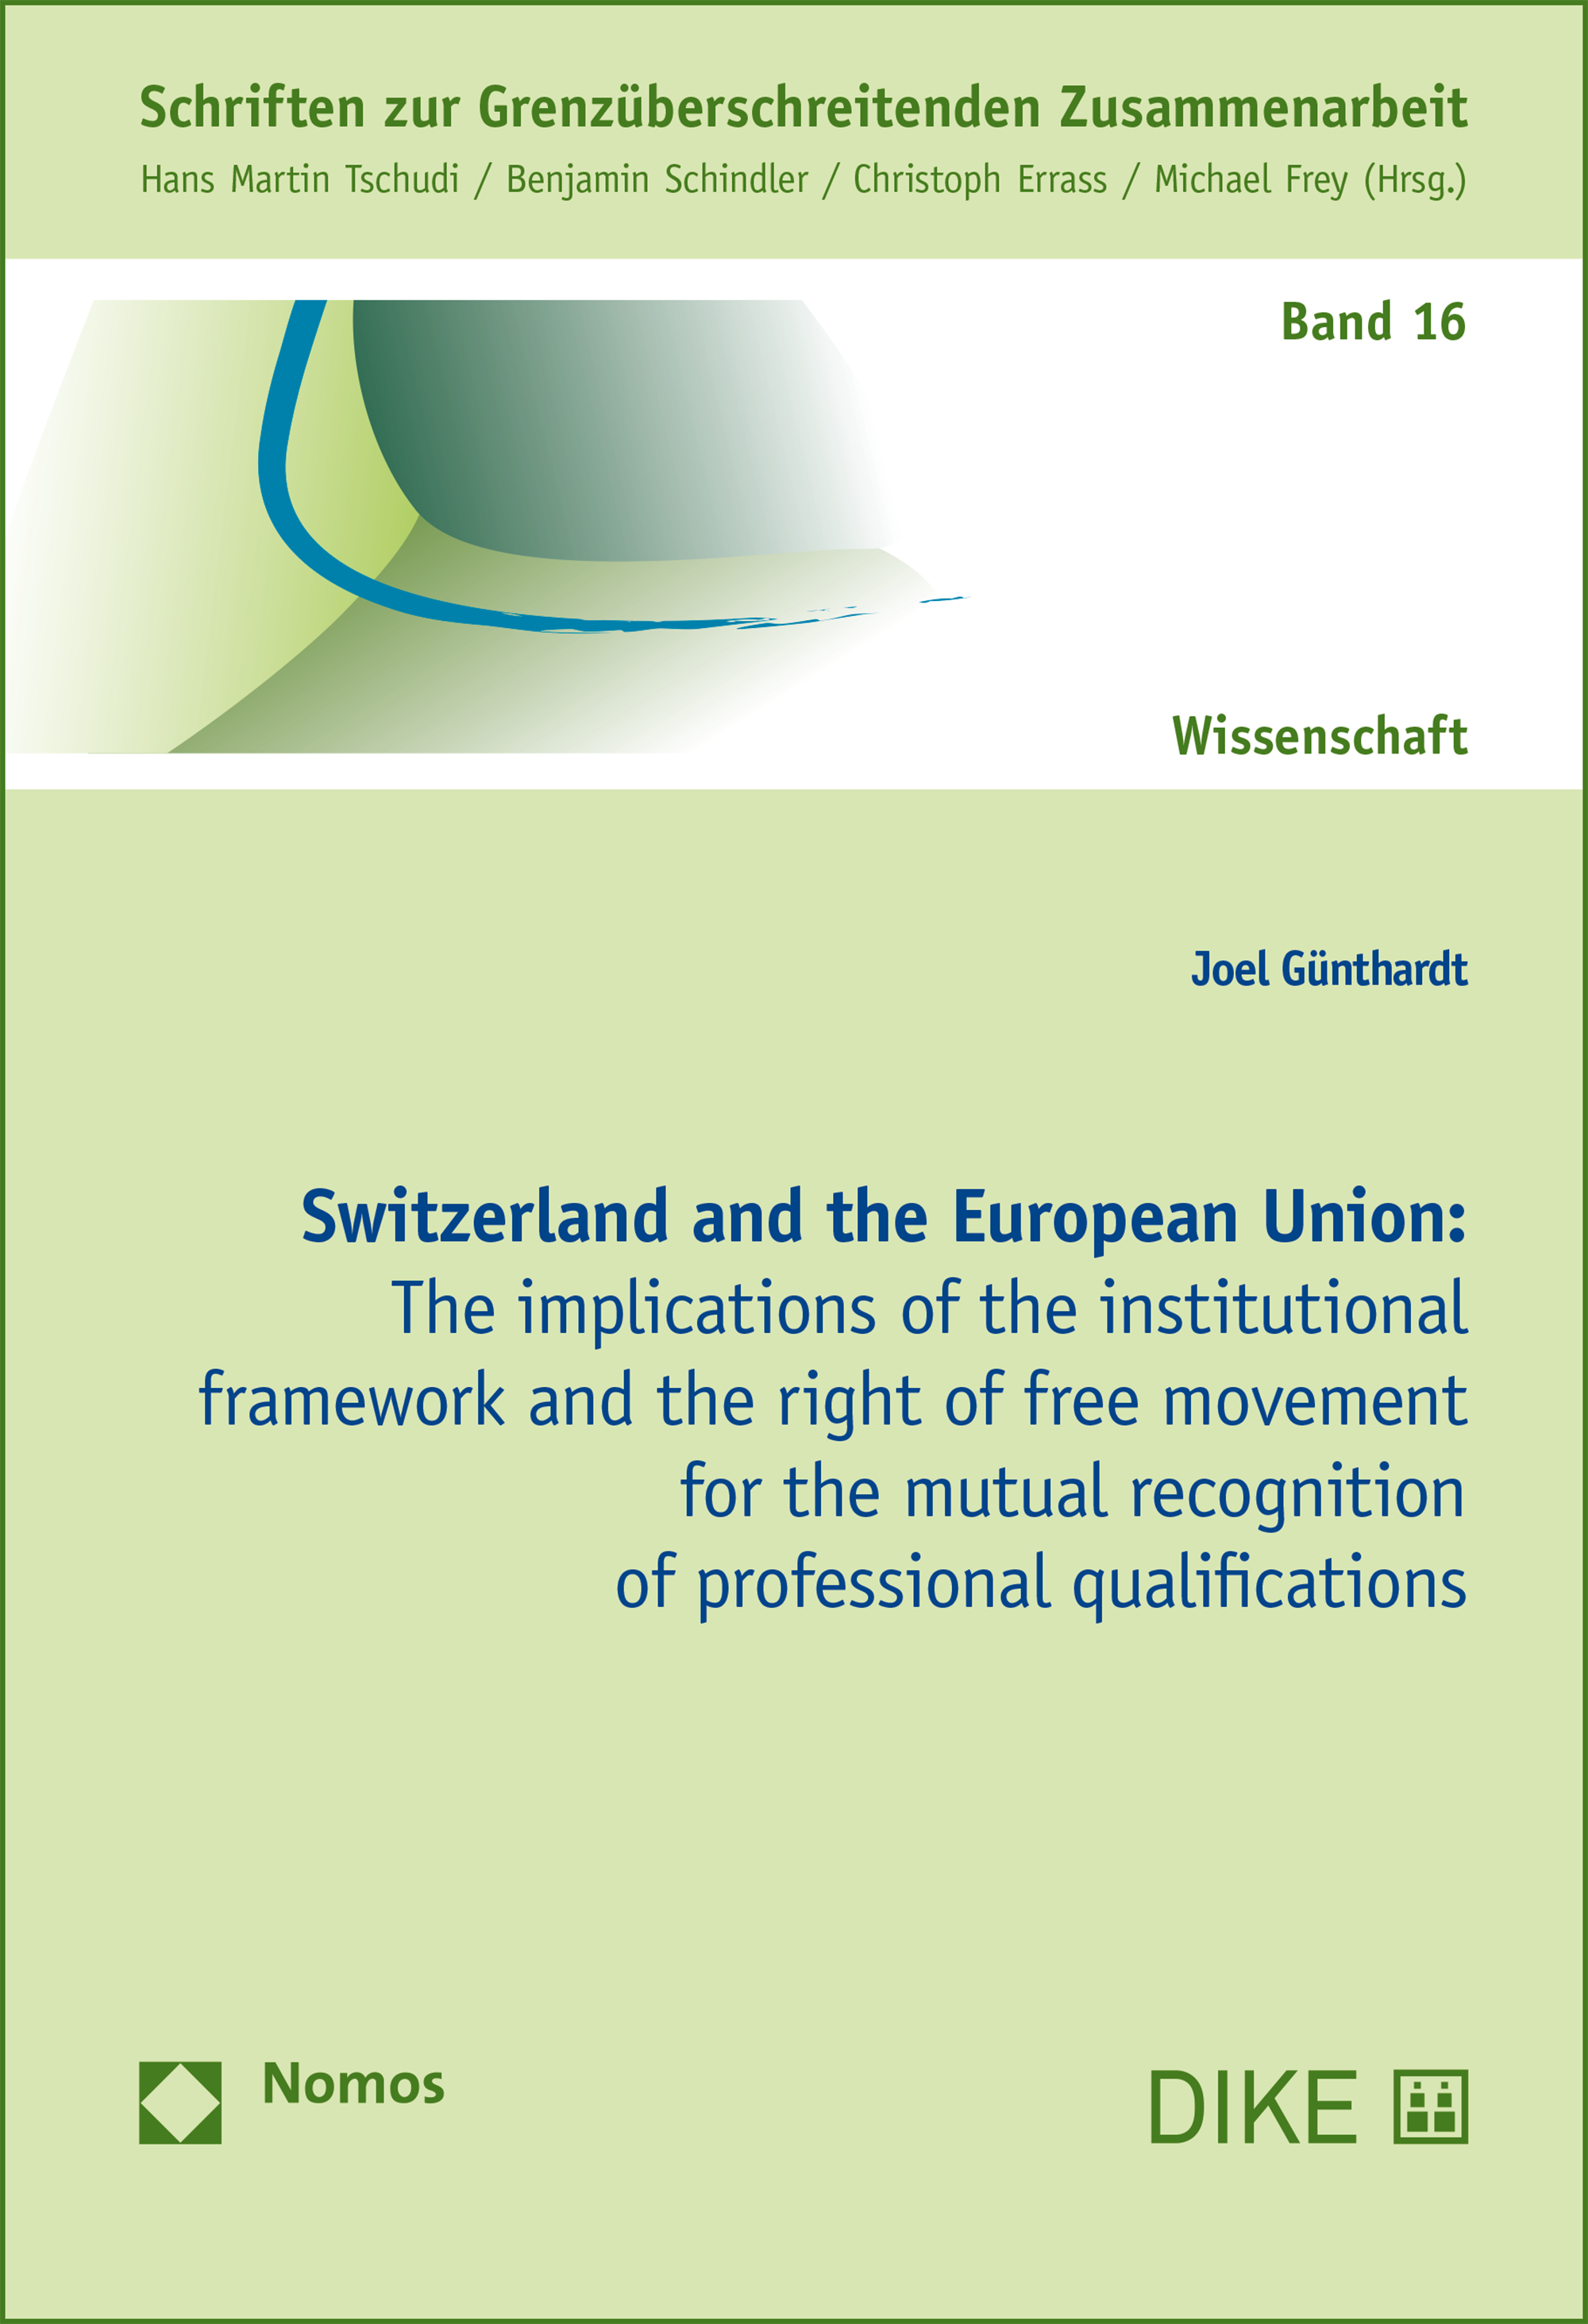 Switzerland and the European Union - The implications of the institutional framework and the right of free movement for the mutual recognition of professional qualifications